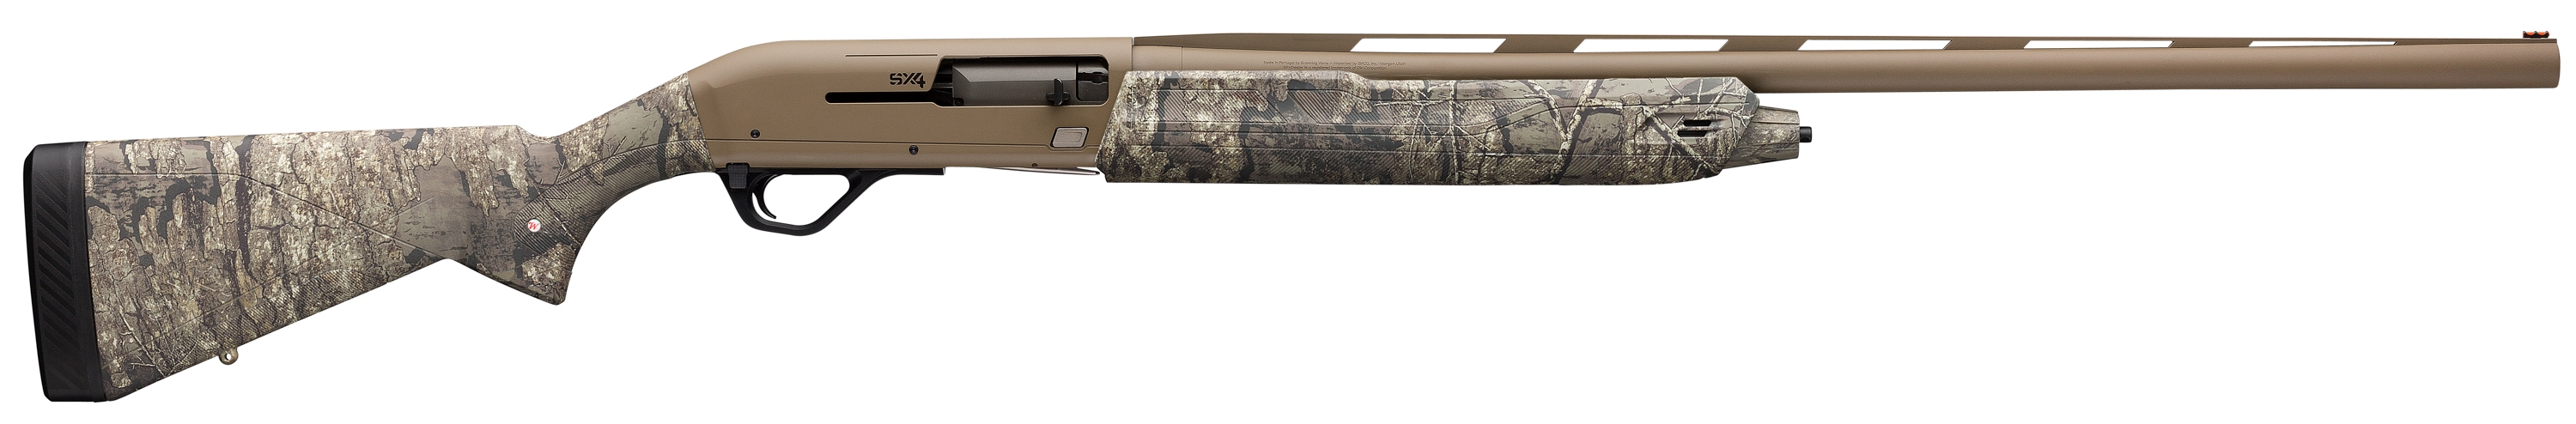 Winchester SX4 HYBRID HUNTER 12 GAUGE